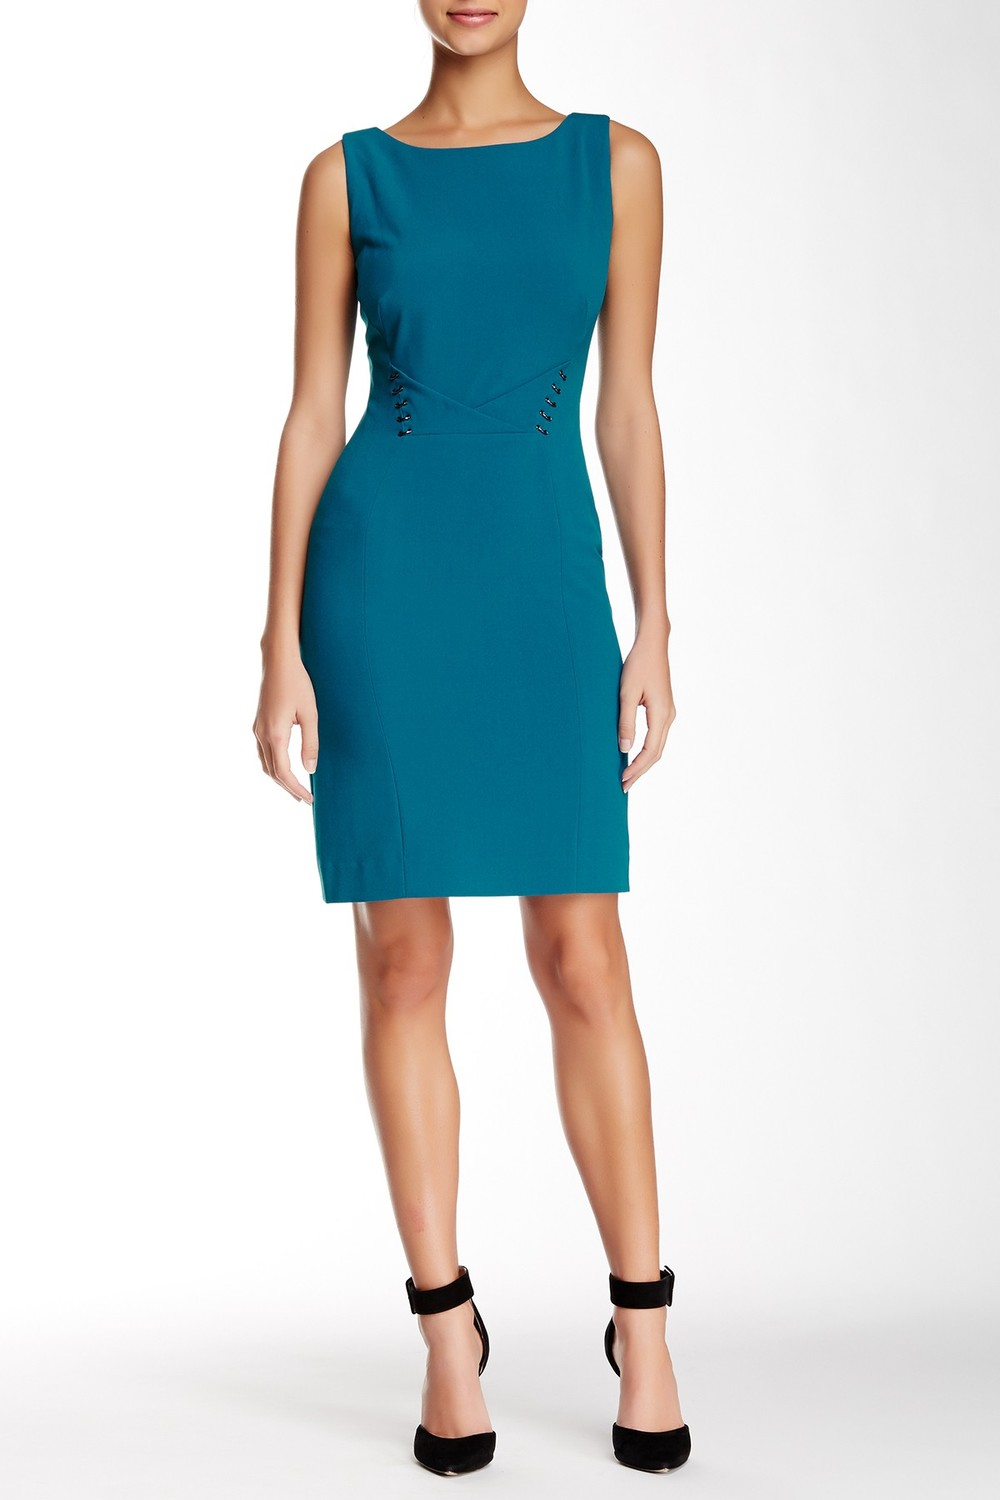 Tahari Hardware Sleeveless Dress. Nordstrom Rack. Was: $128 Now: $49.